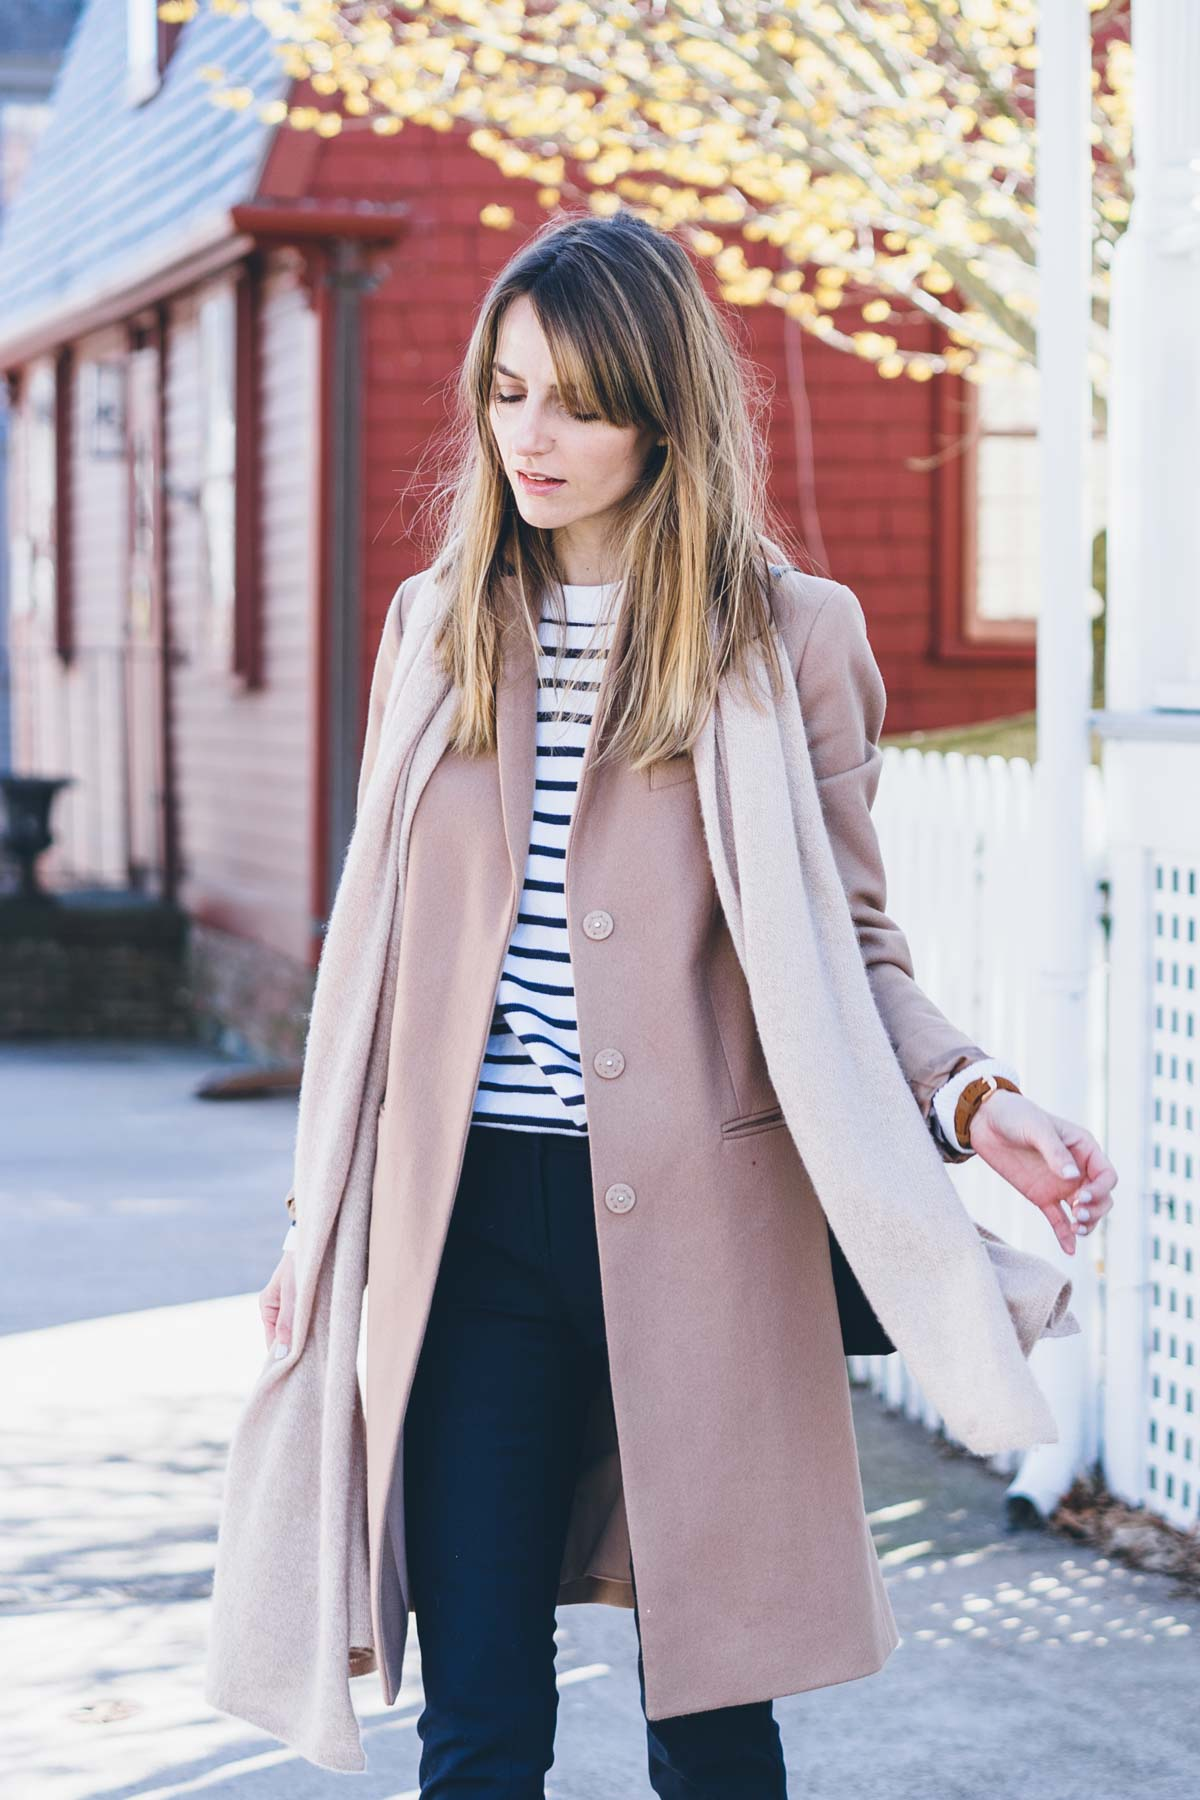 Jess Ann Kirby in a camel coat and striped sweater for spring